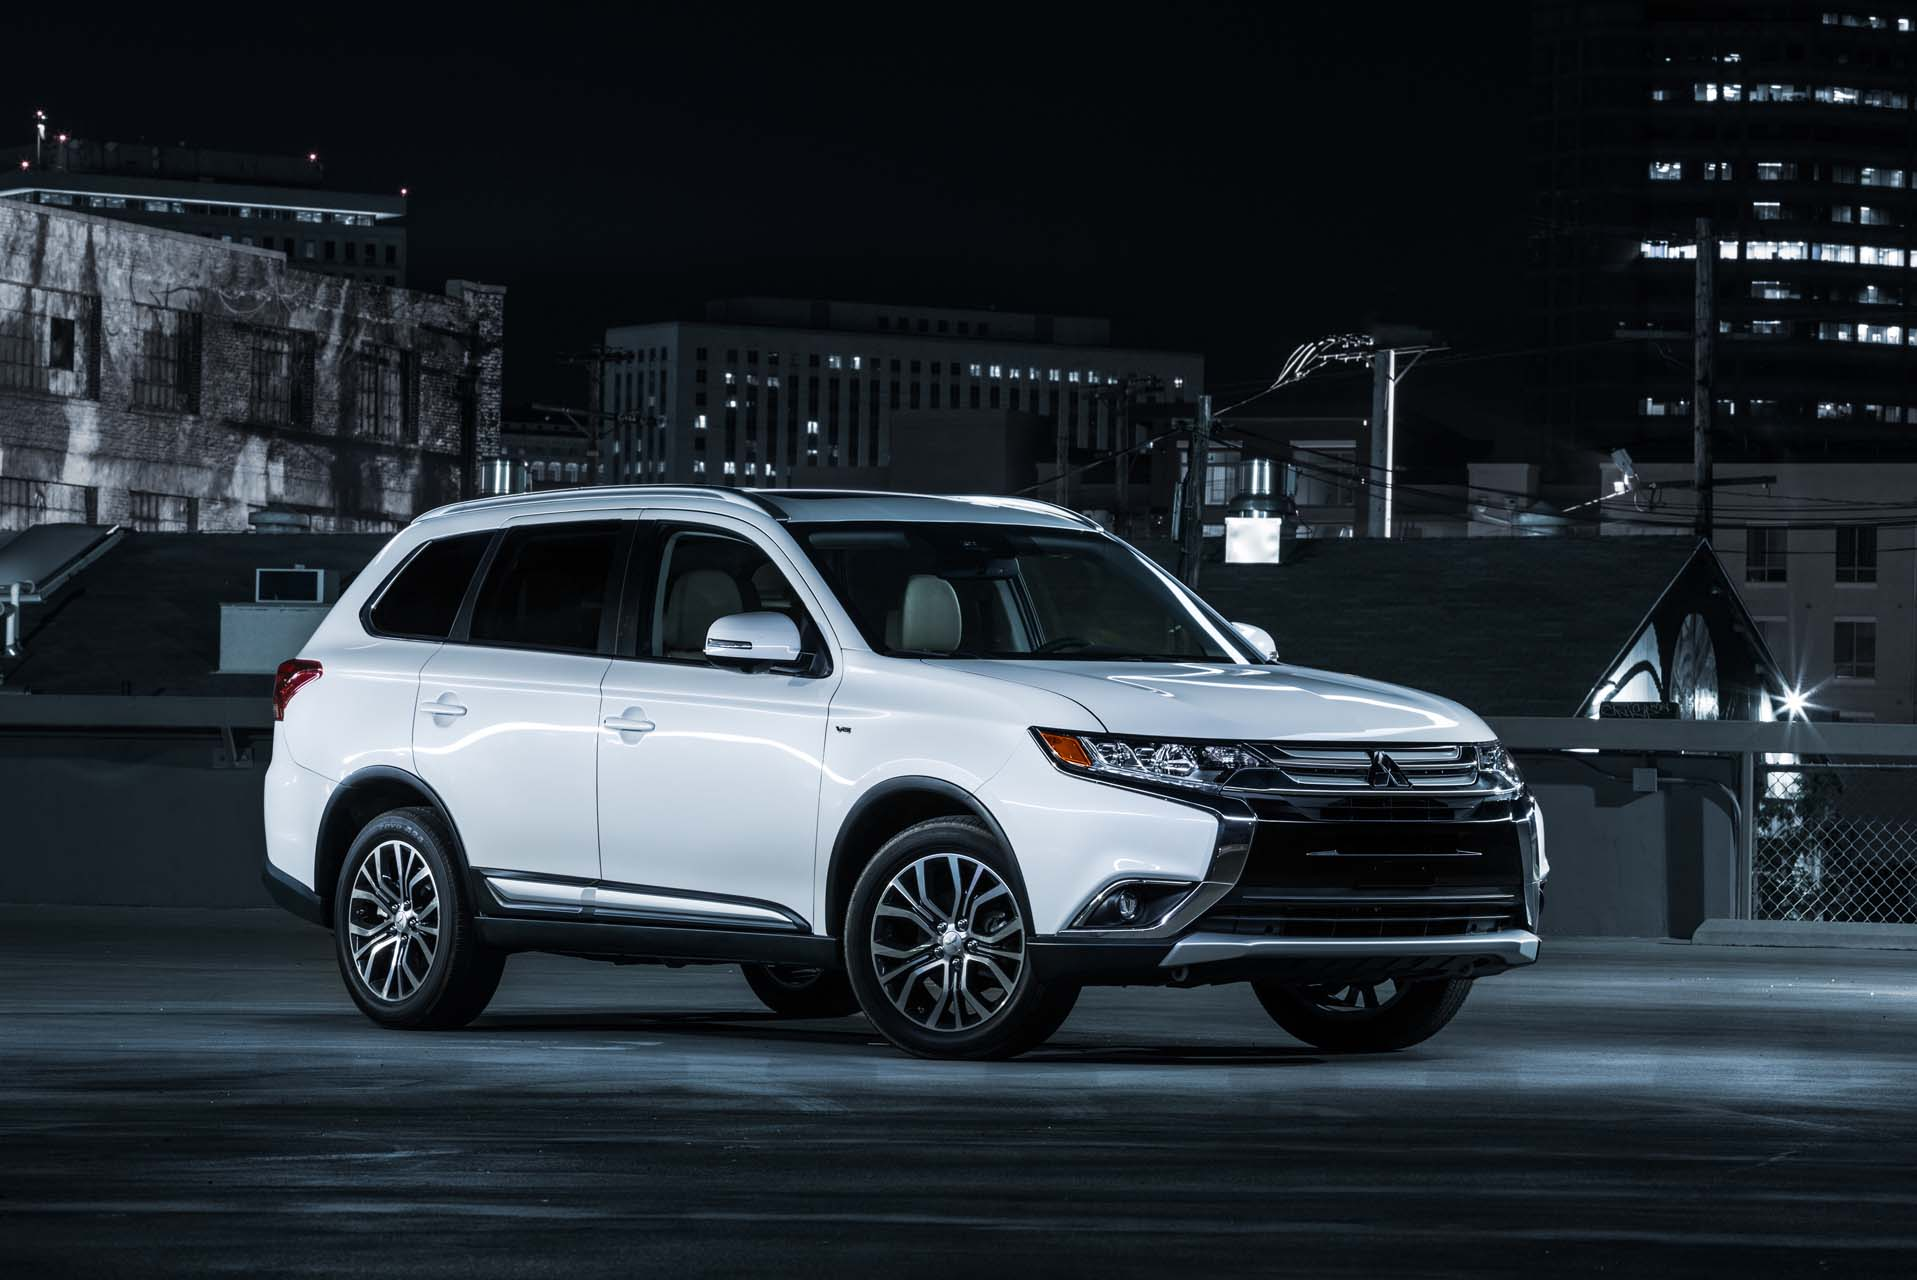 2018 mitsubishi outlander review ratings specs prices and photos the car connection. Black Bedroom Furniture Sets. Home Design Ideas